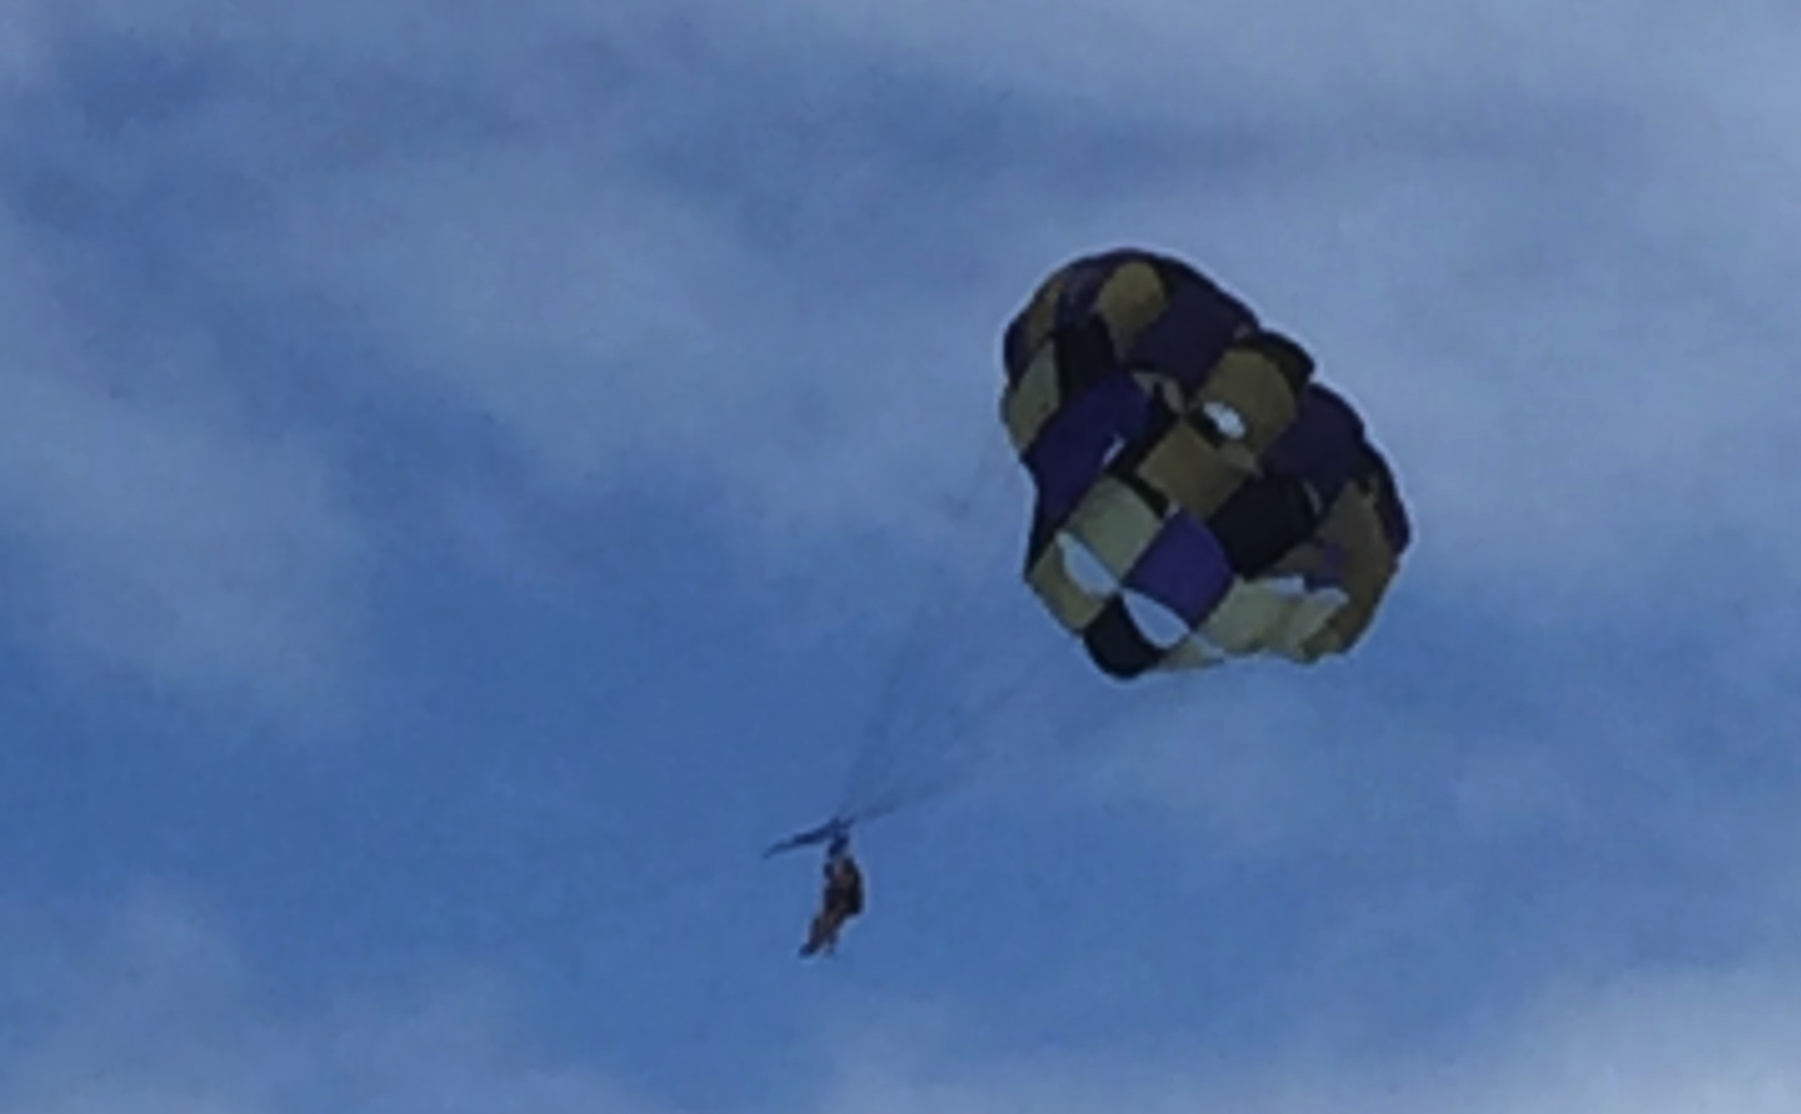 parasailing in Cozumel